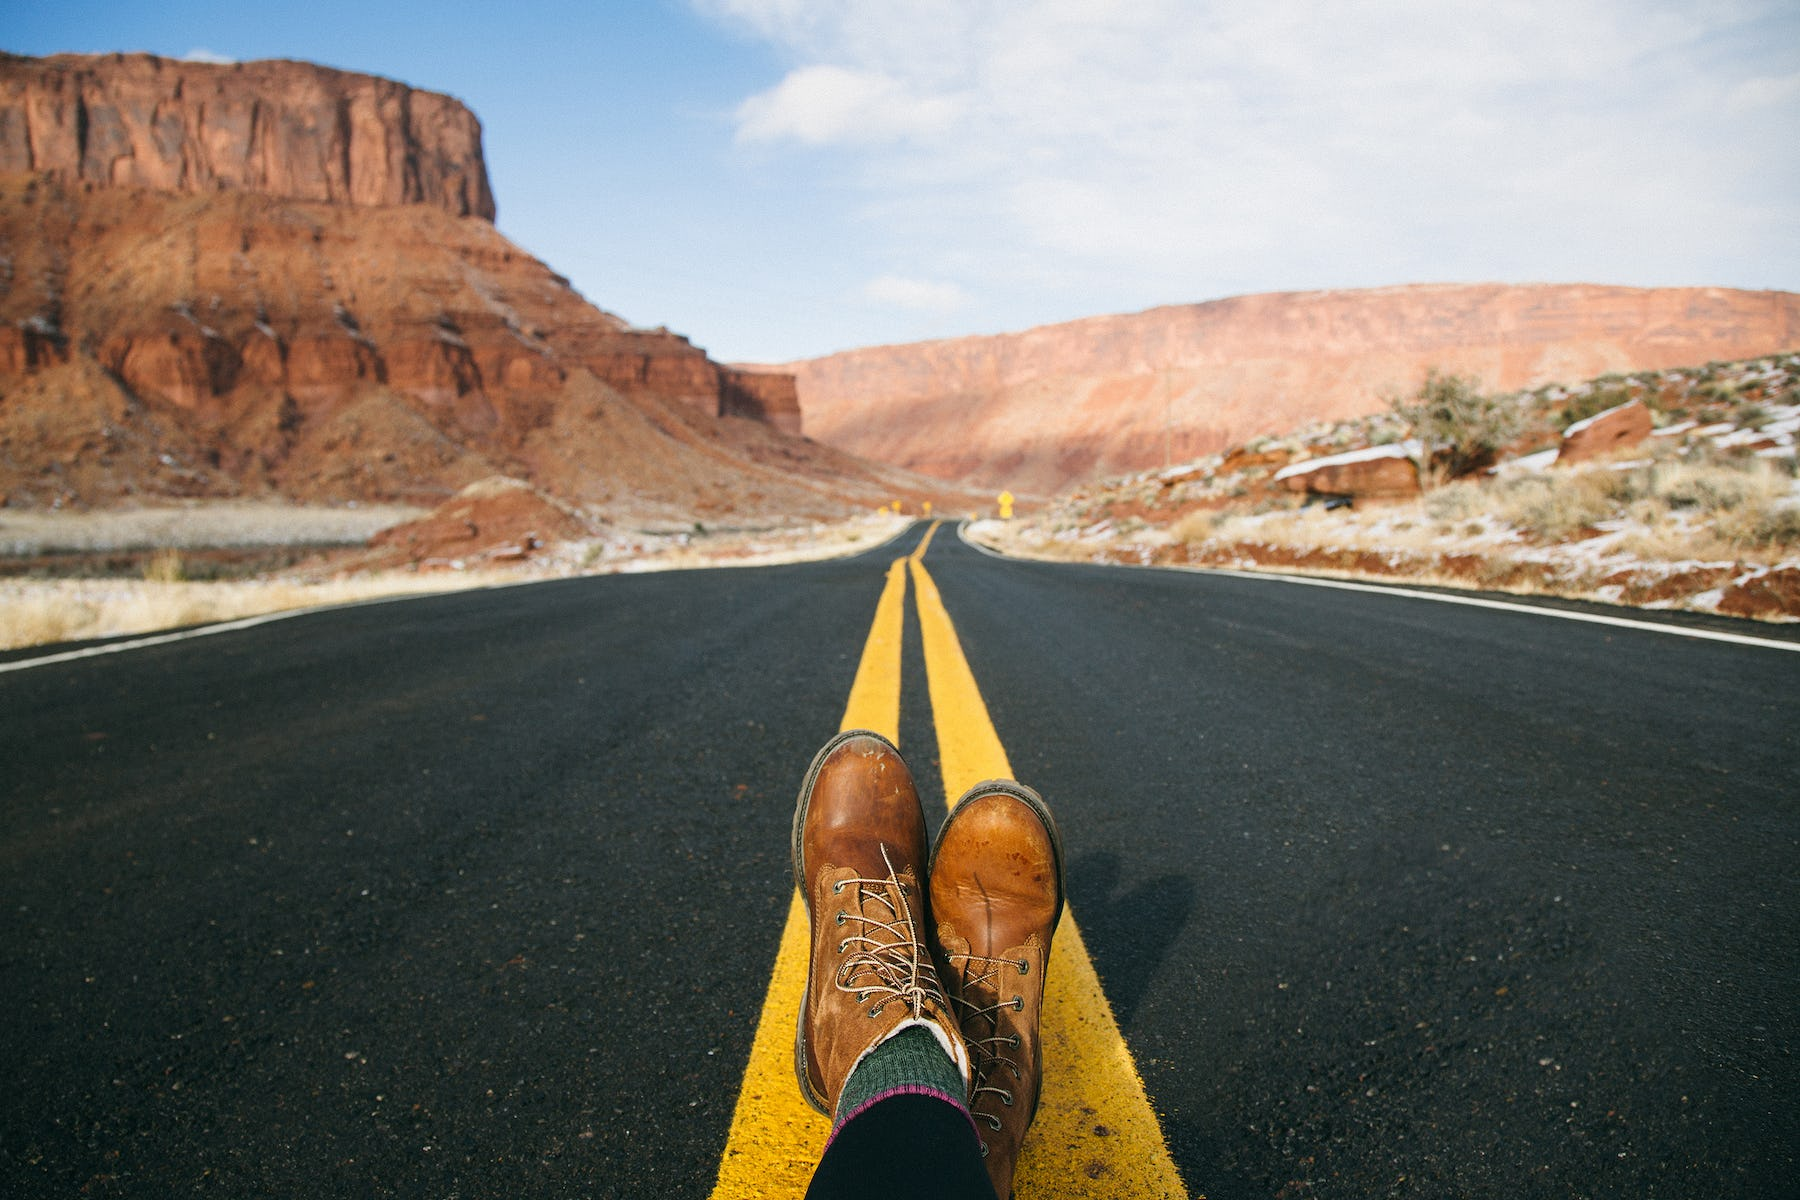 Laura Austin | How To Do A Solo Road Trip